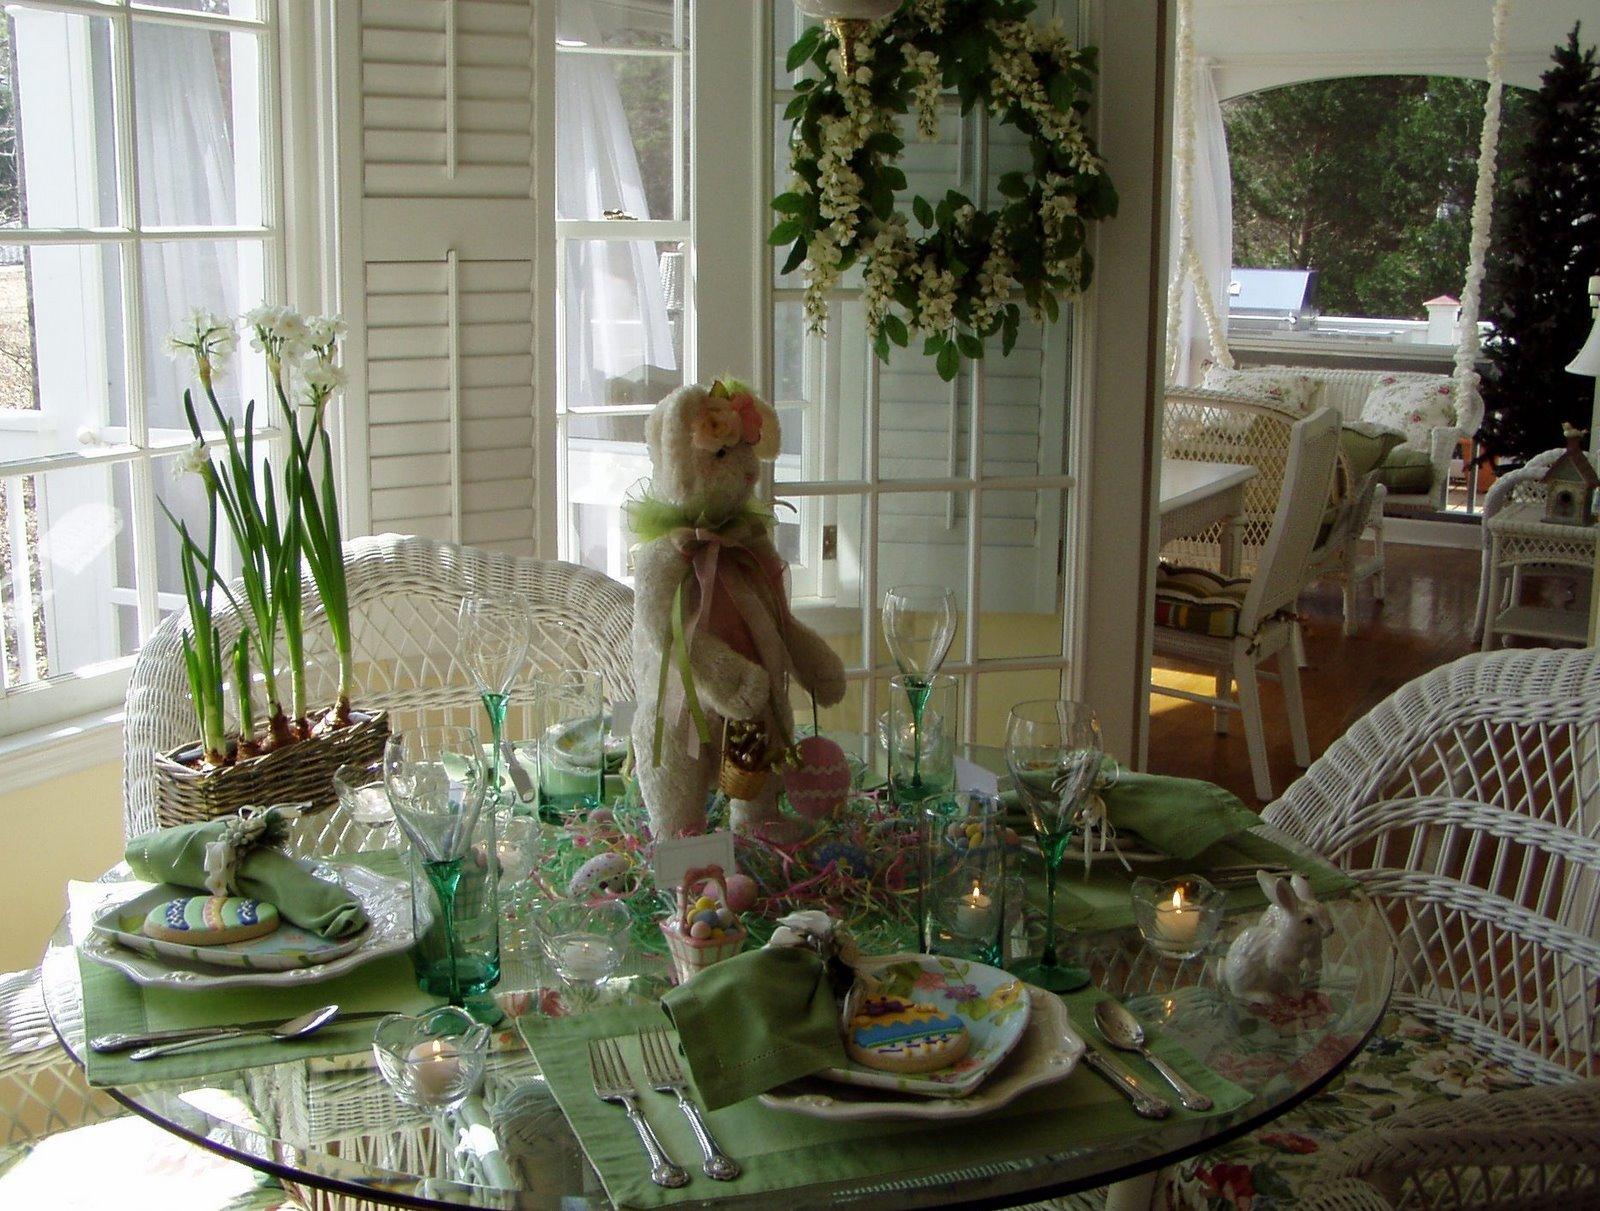 Easter Tablescape : Easter2B01 from betweennapsontheporch.net size 1600 x 1211 jpeg 393kB